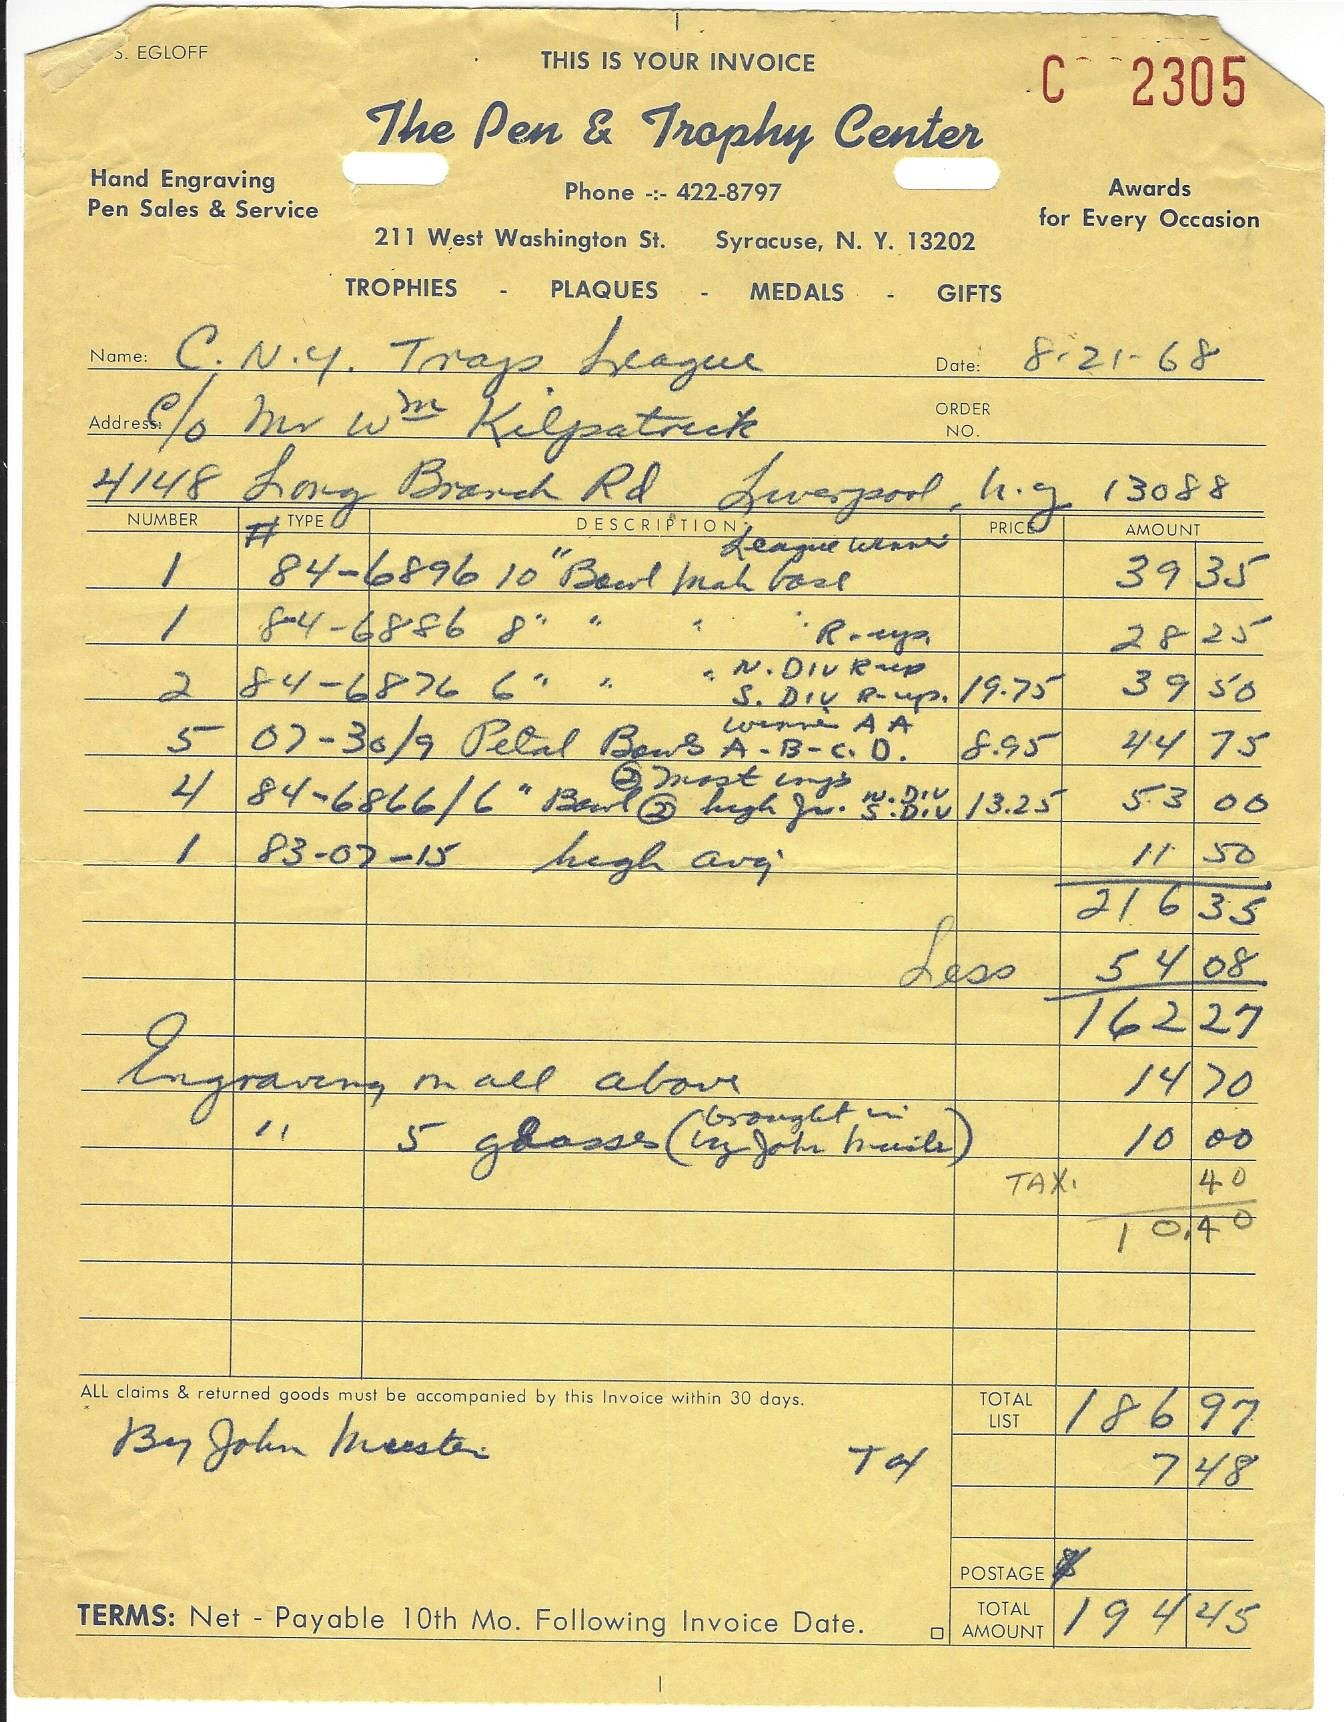 cnytl 1968 trophy invoice